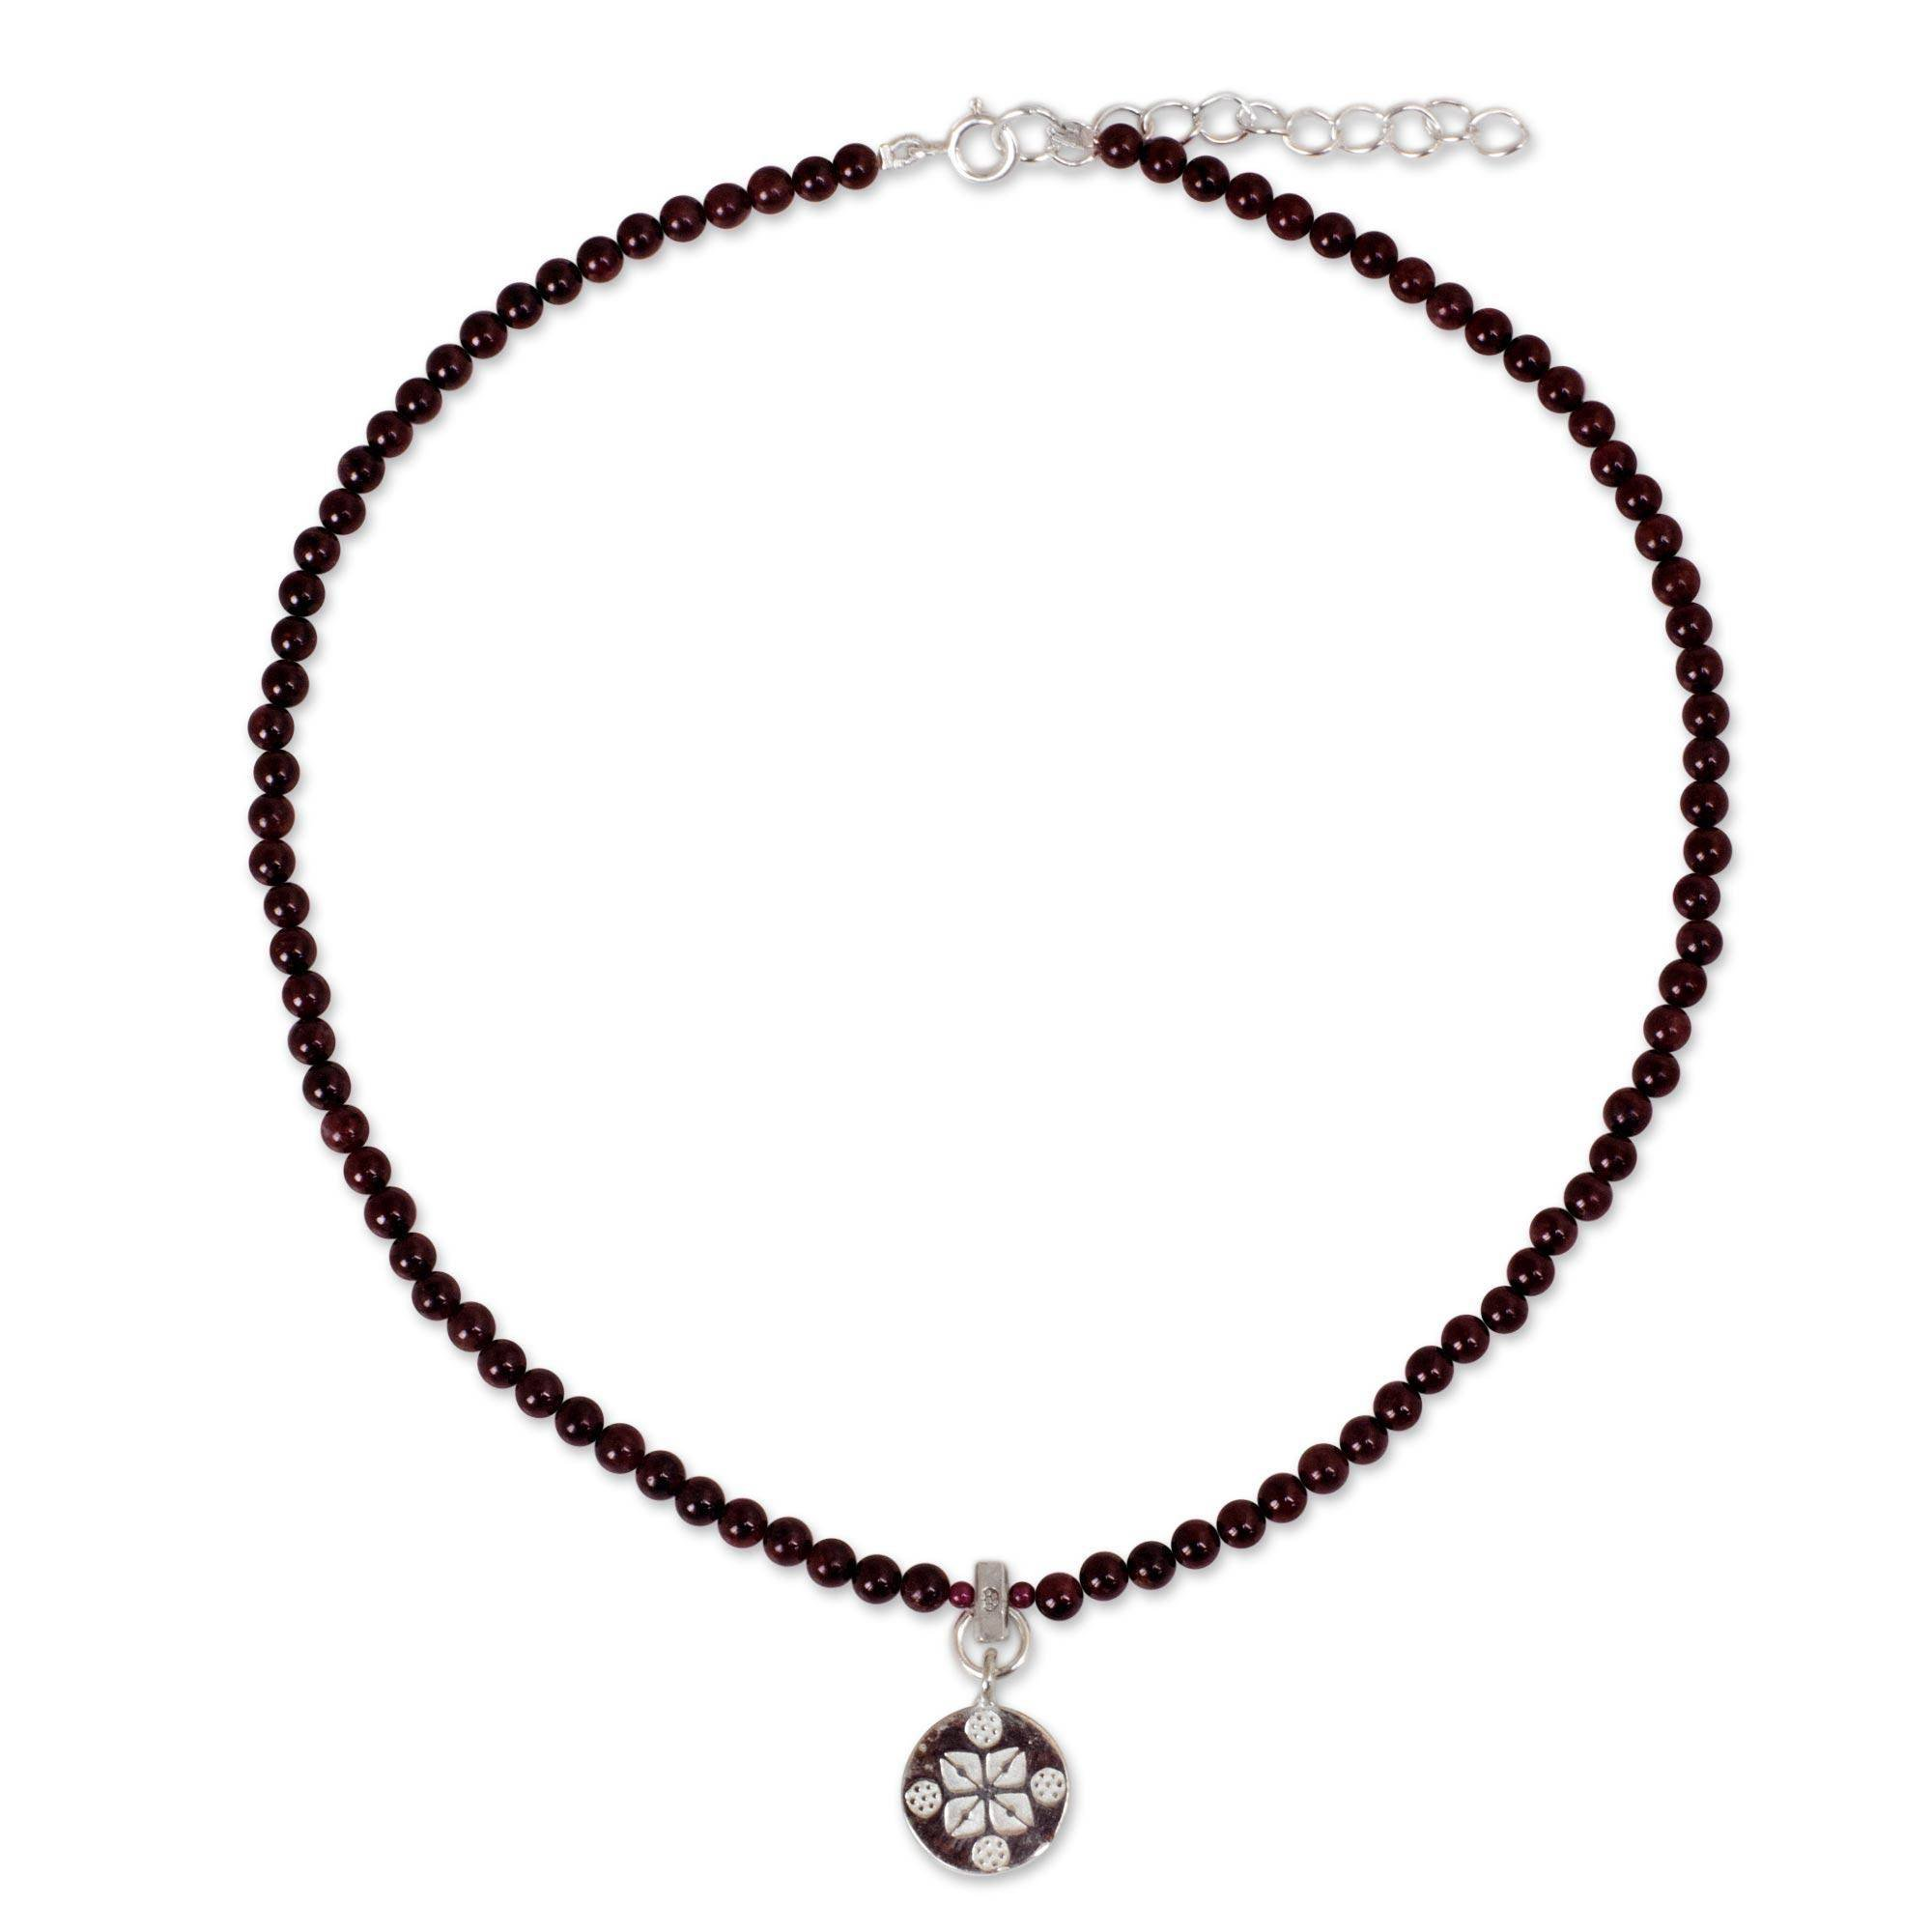 NOVICA Garnet Strand Necklace with 925 Sterling Silver Pendant, 15.75'', Lucky Charm'